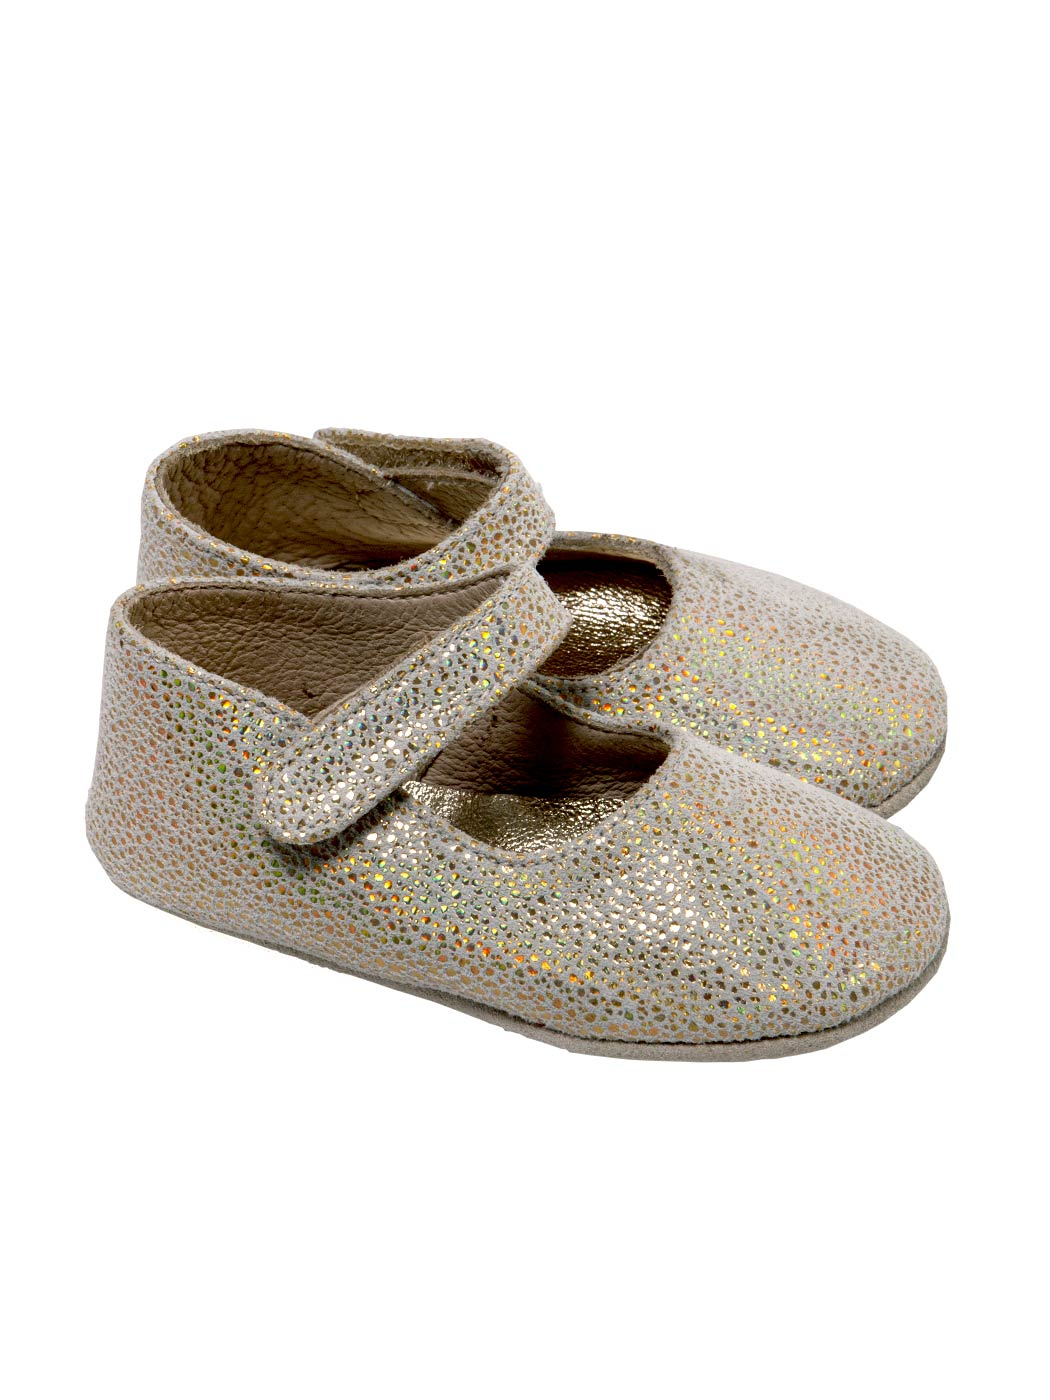 Beauty baby shoes